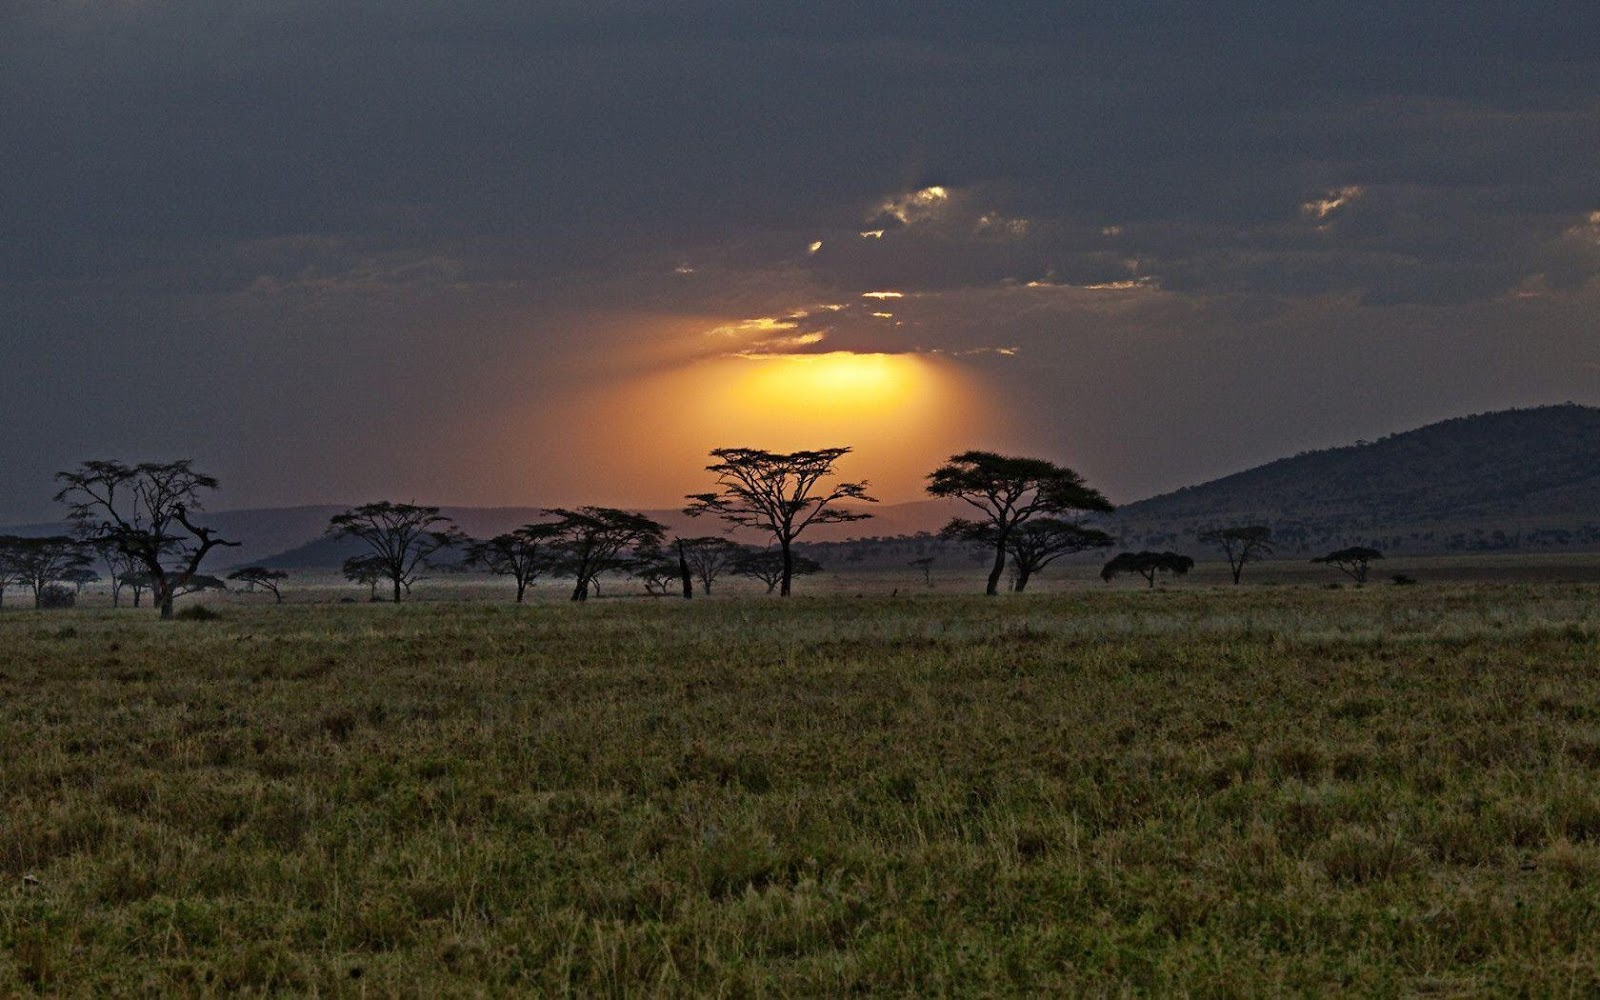 Sunset kenya africa Wallpapers HD wallpapers